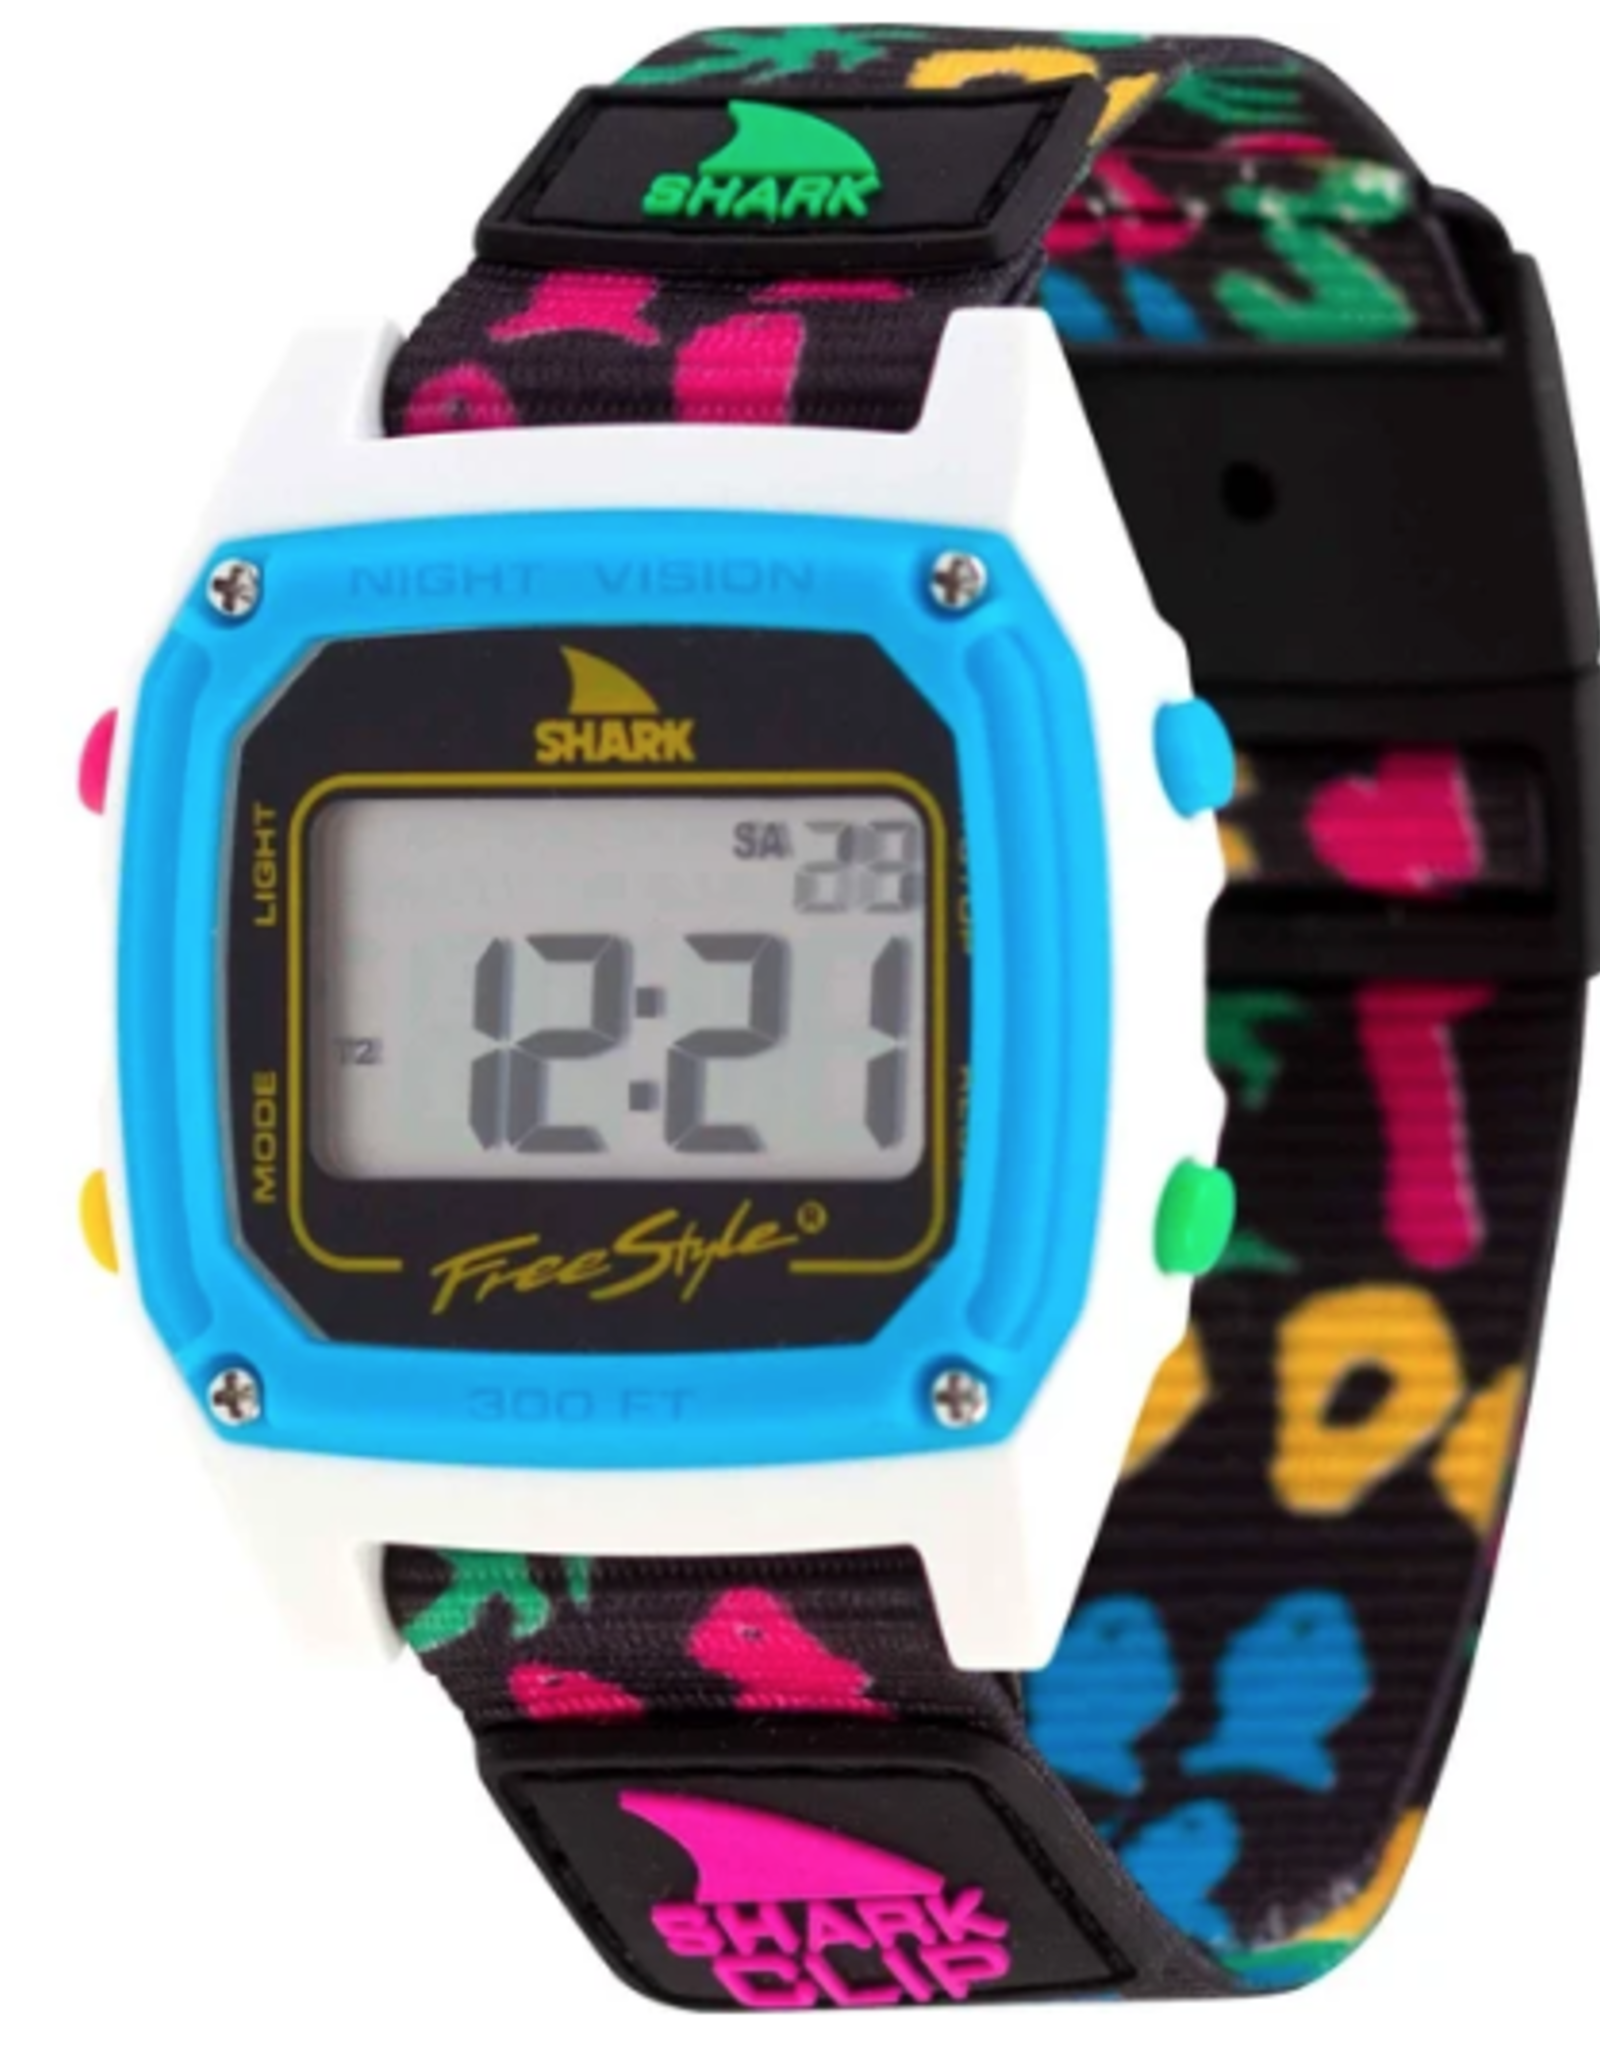 FREESTYLE FREESTYLE SHARK CLASSIC CLIP BEACH BASH WATCH